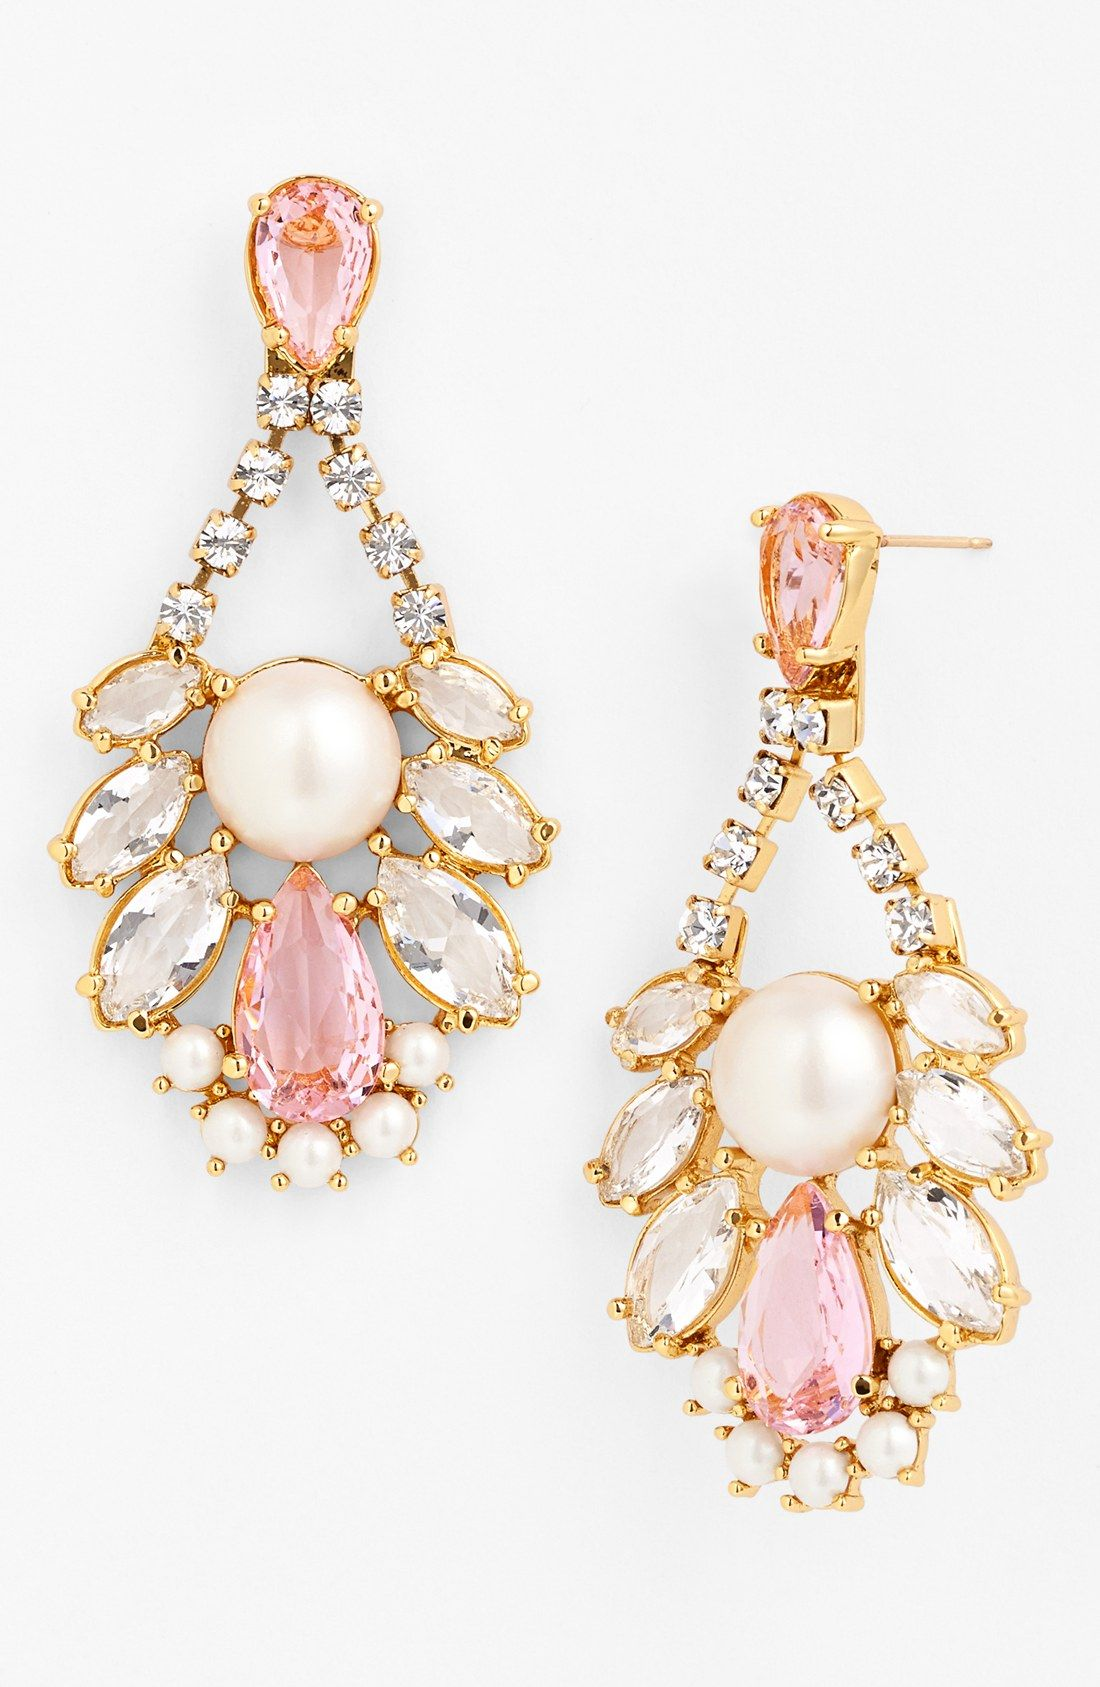 10 best spring soiree accessories chandelier earrings elegant 10 best spring soiree accessories pearl chandelierchandelier earringscrystal arubaitofo Image collections